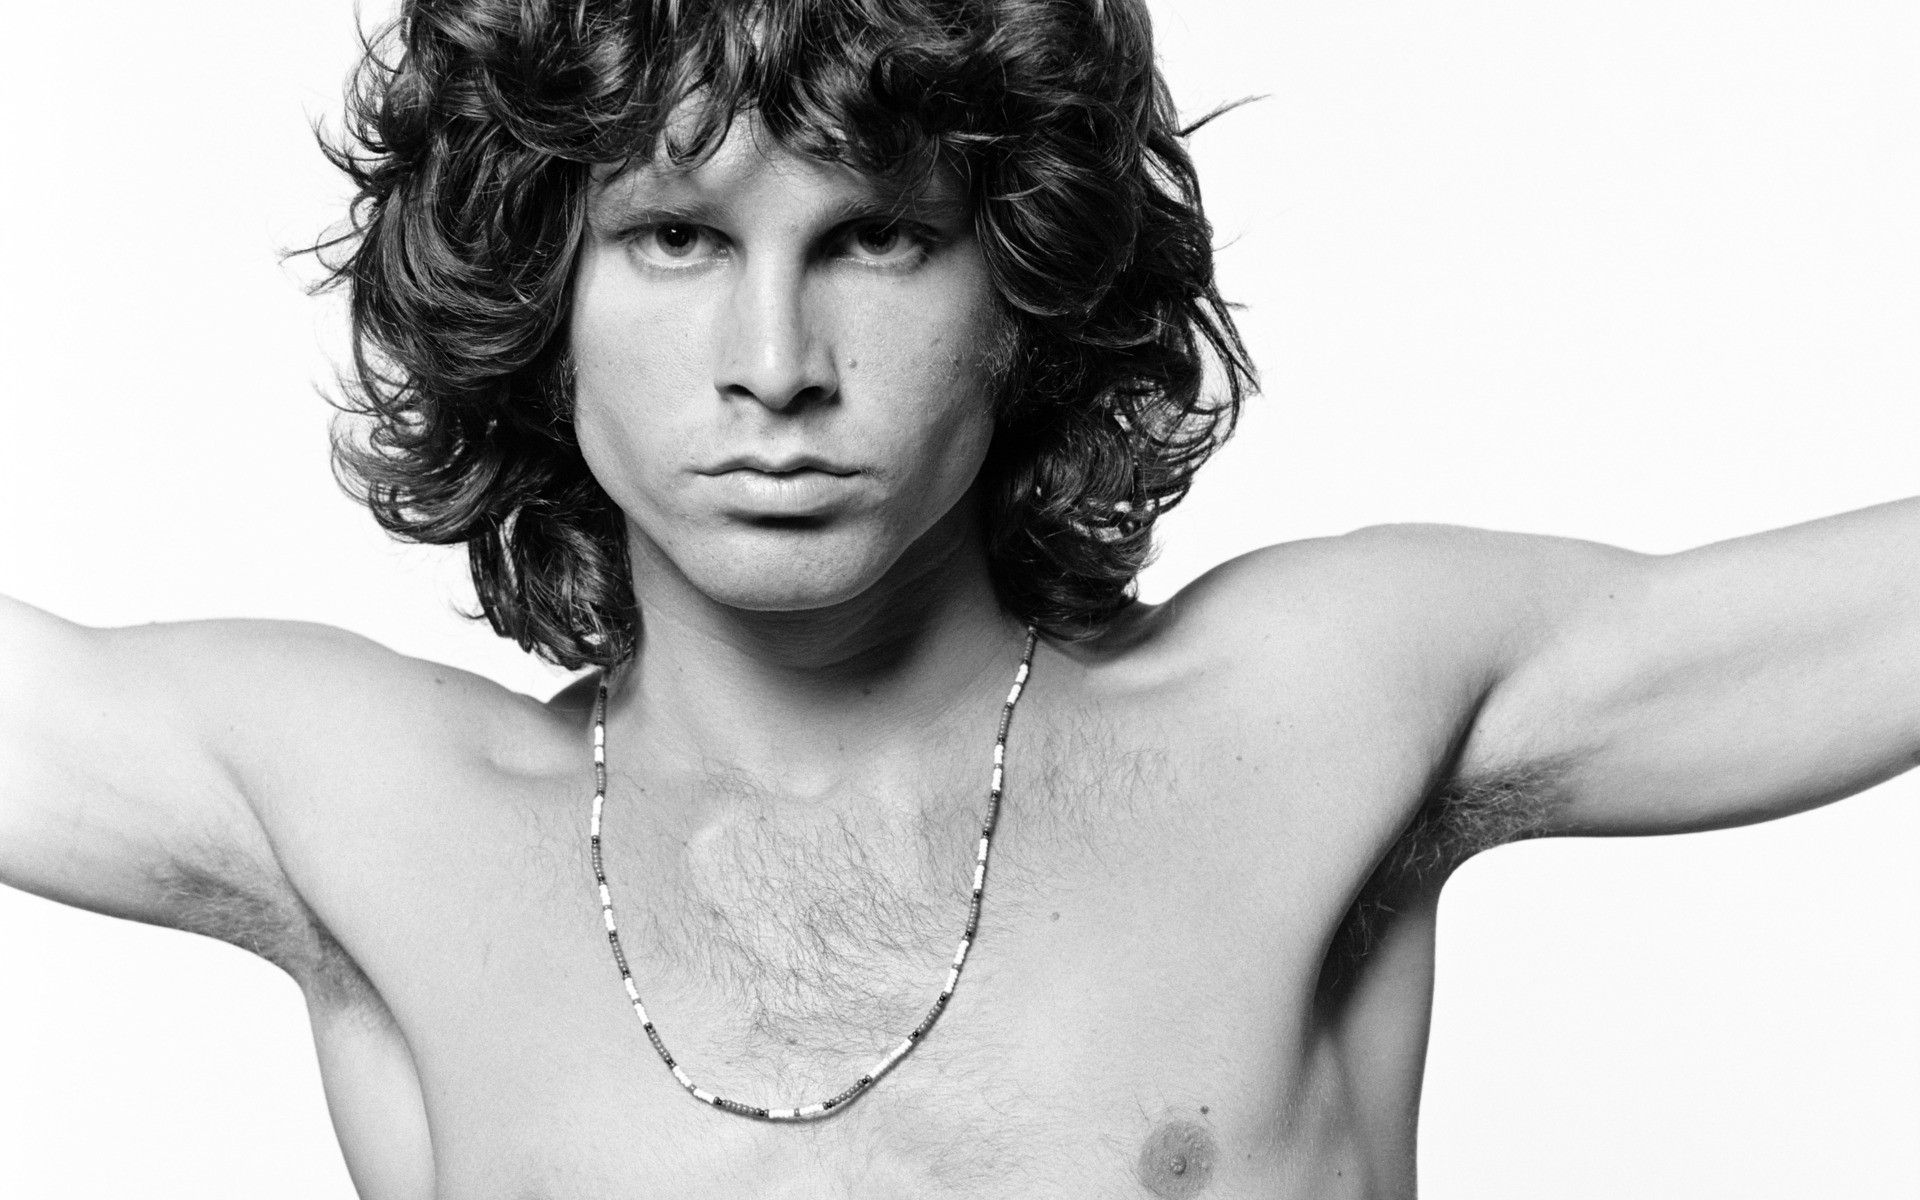 Was it not just Jim Morrison's confusion?